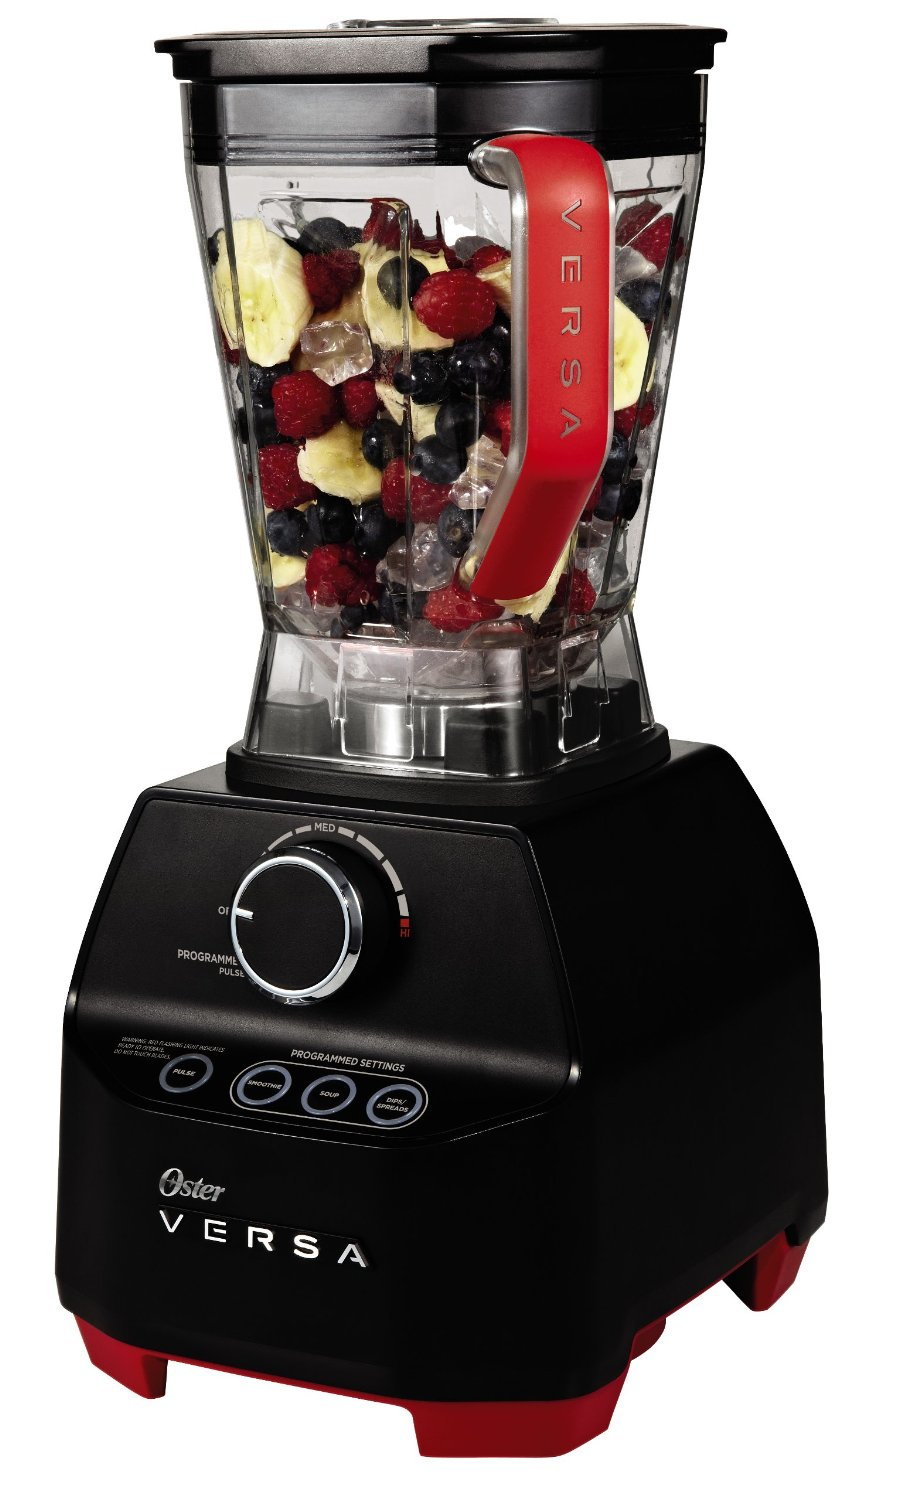 Oster Versa Performance 1400-Watt Blender Review